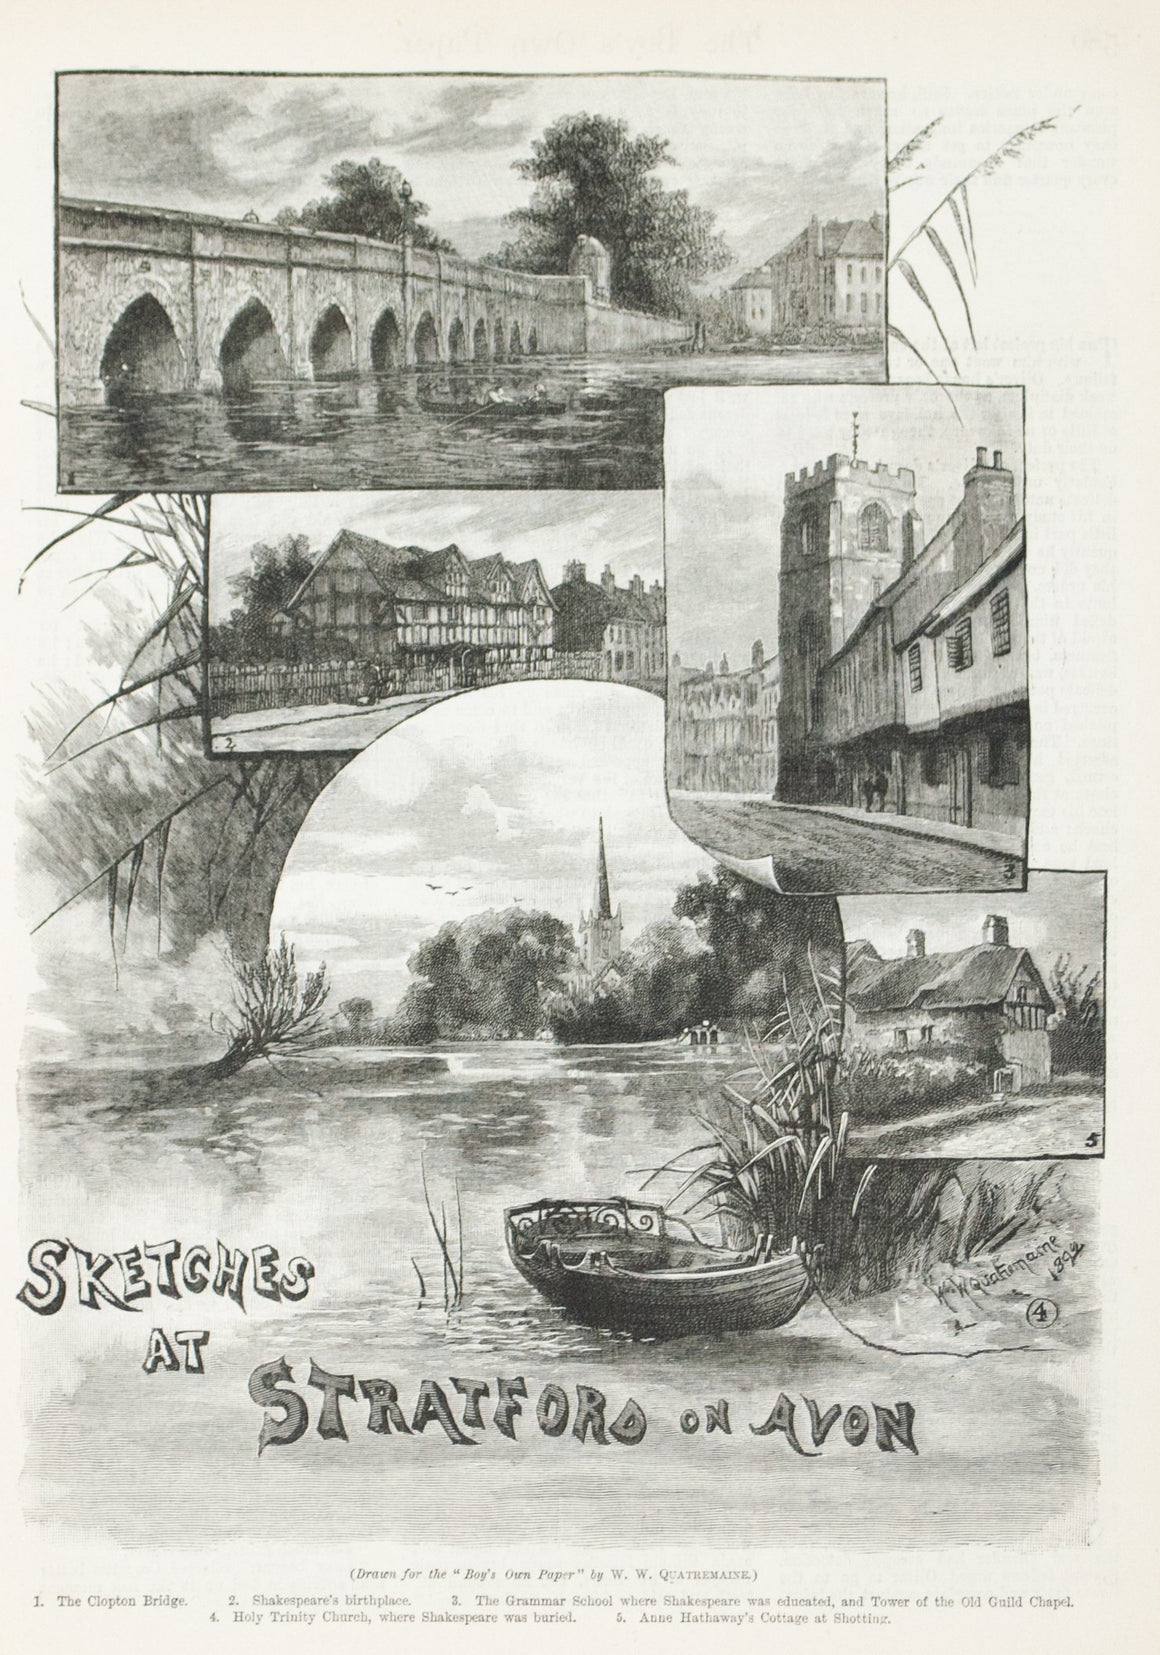 1893 Sketches at Straford on Avon - Quatremain